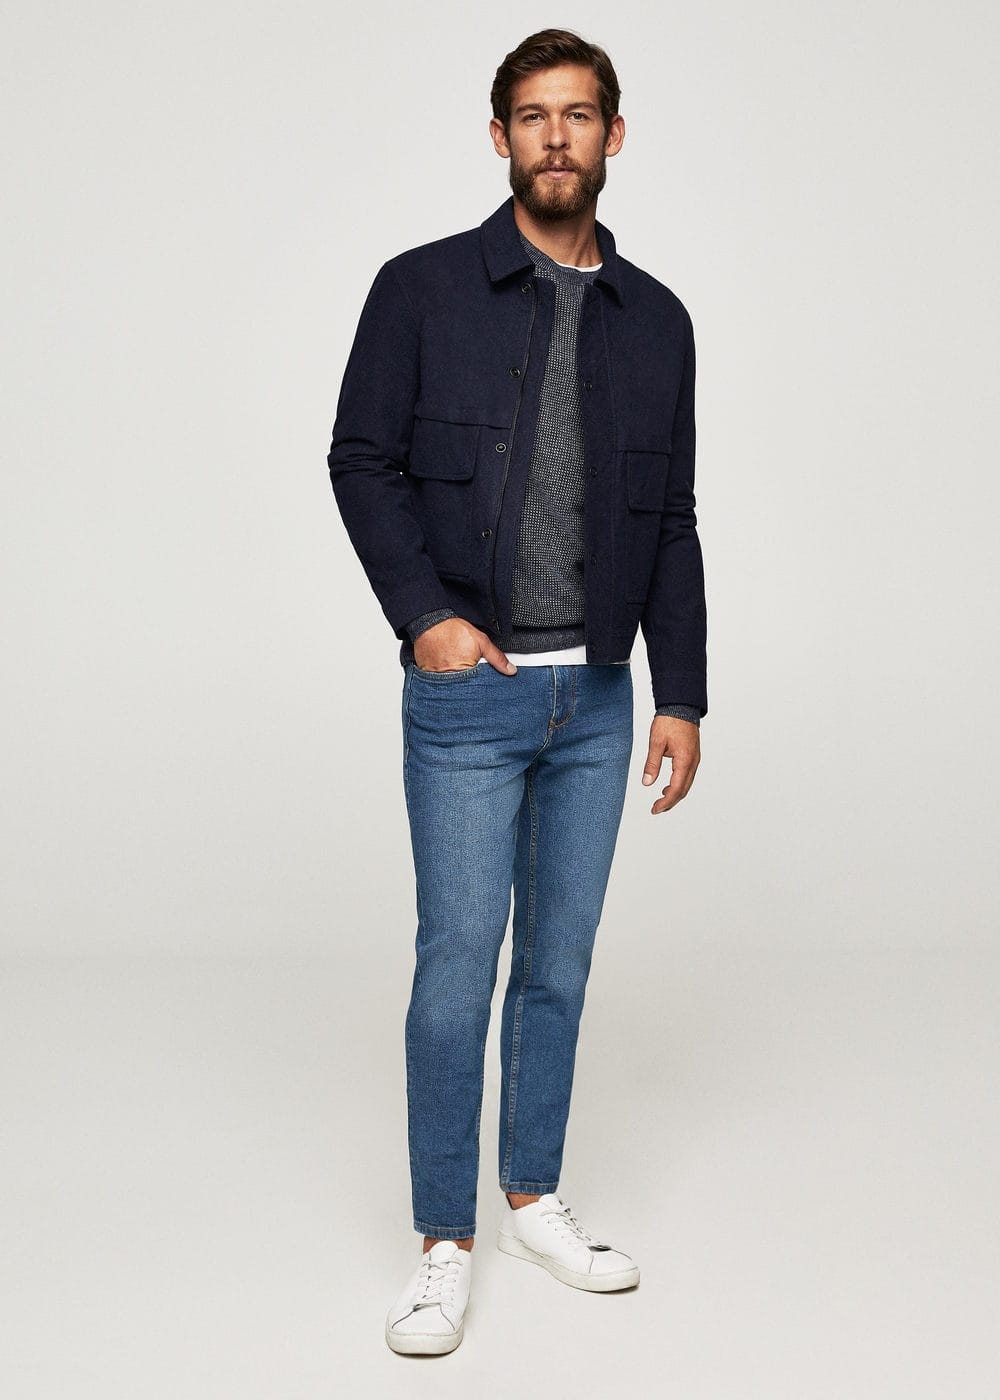 Jeans jan slim-fit lavado oscuro | MANGO